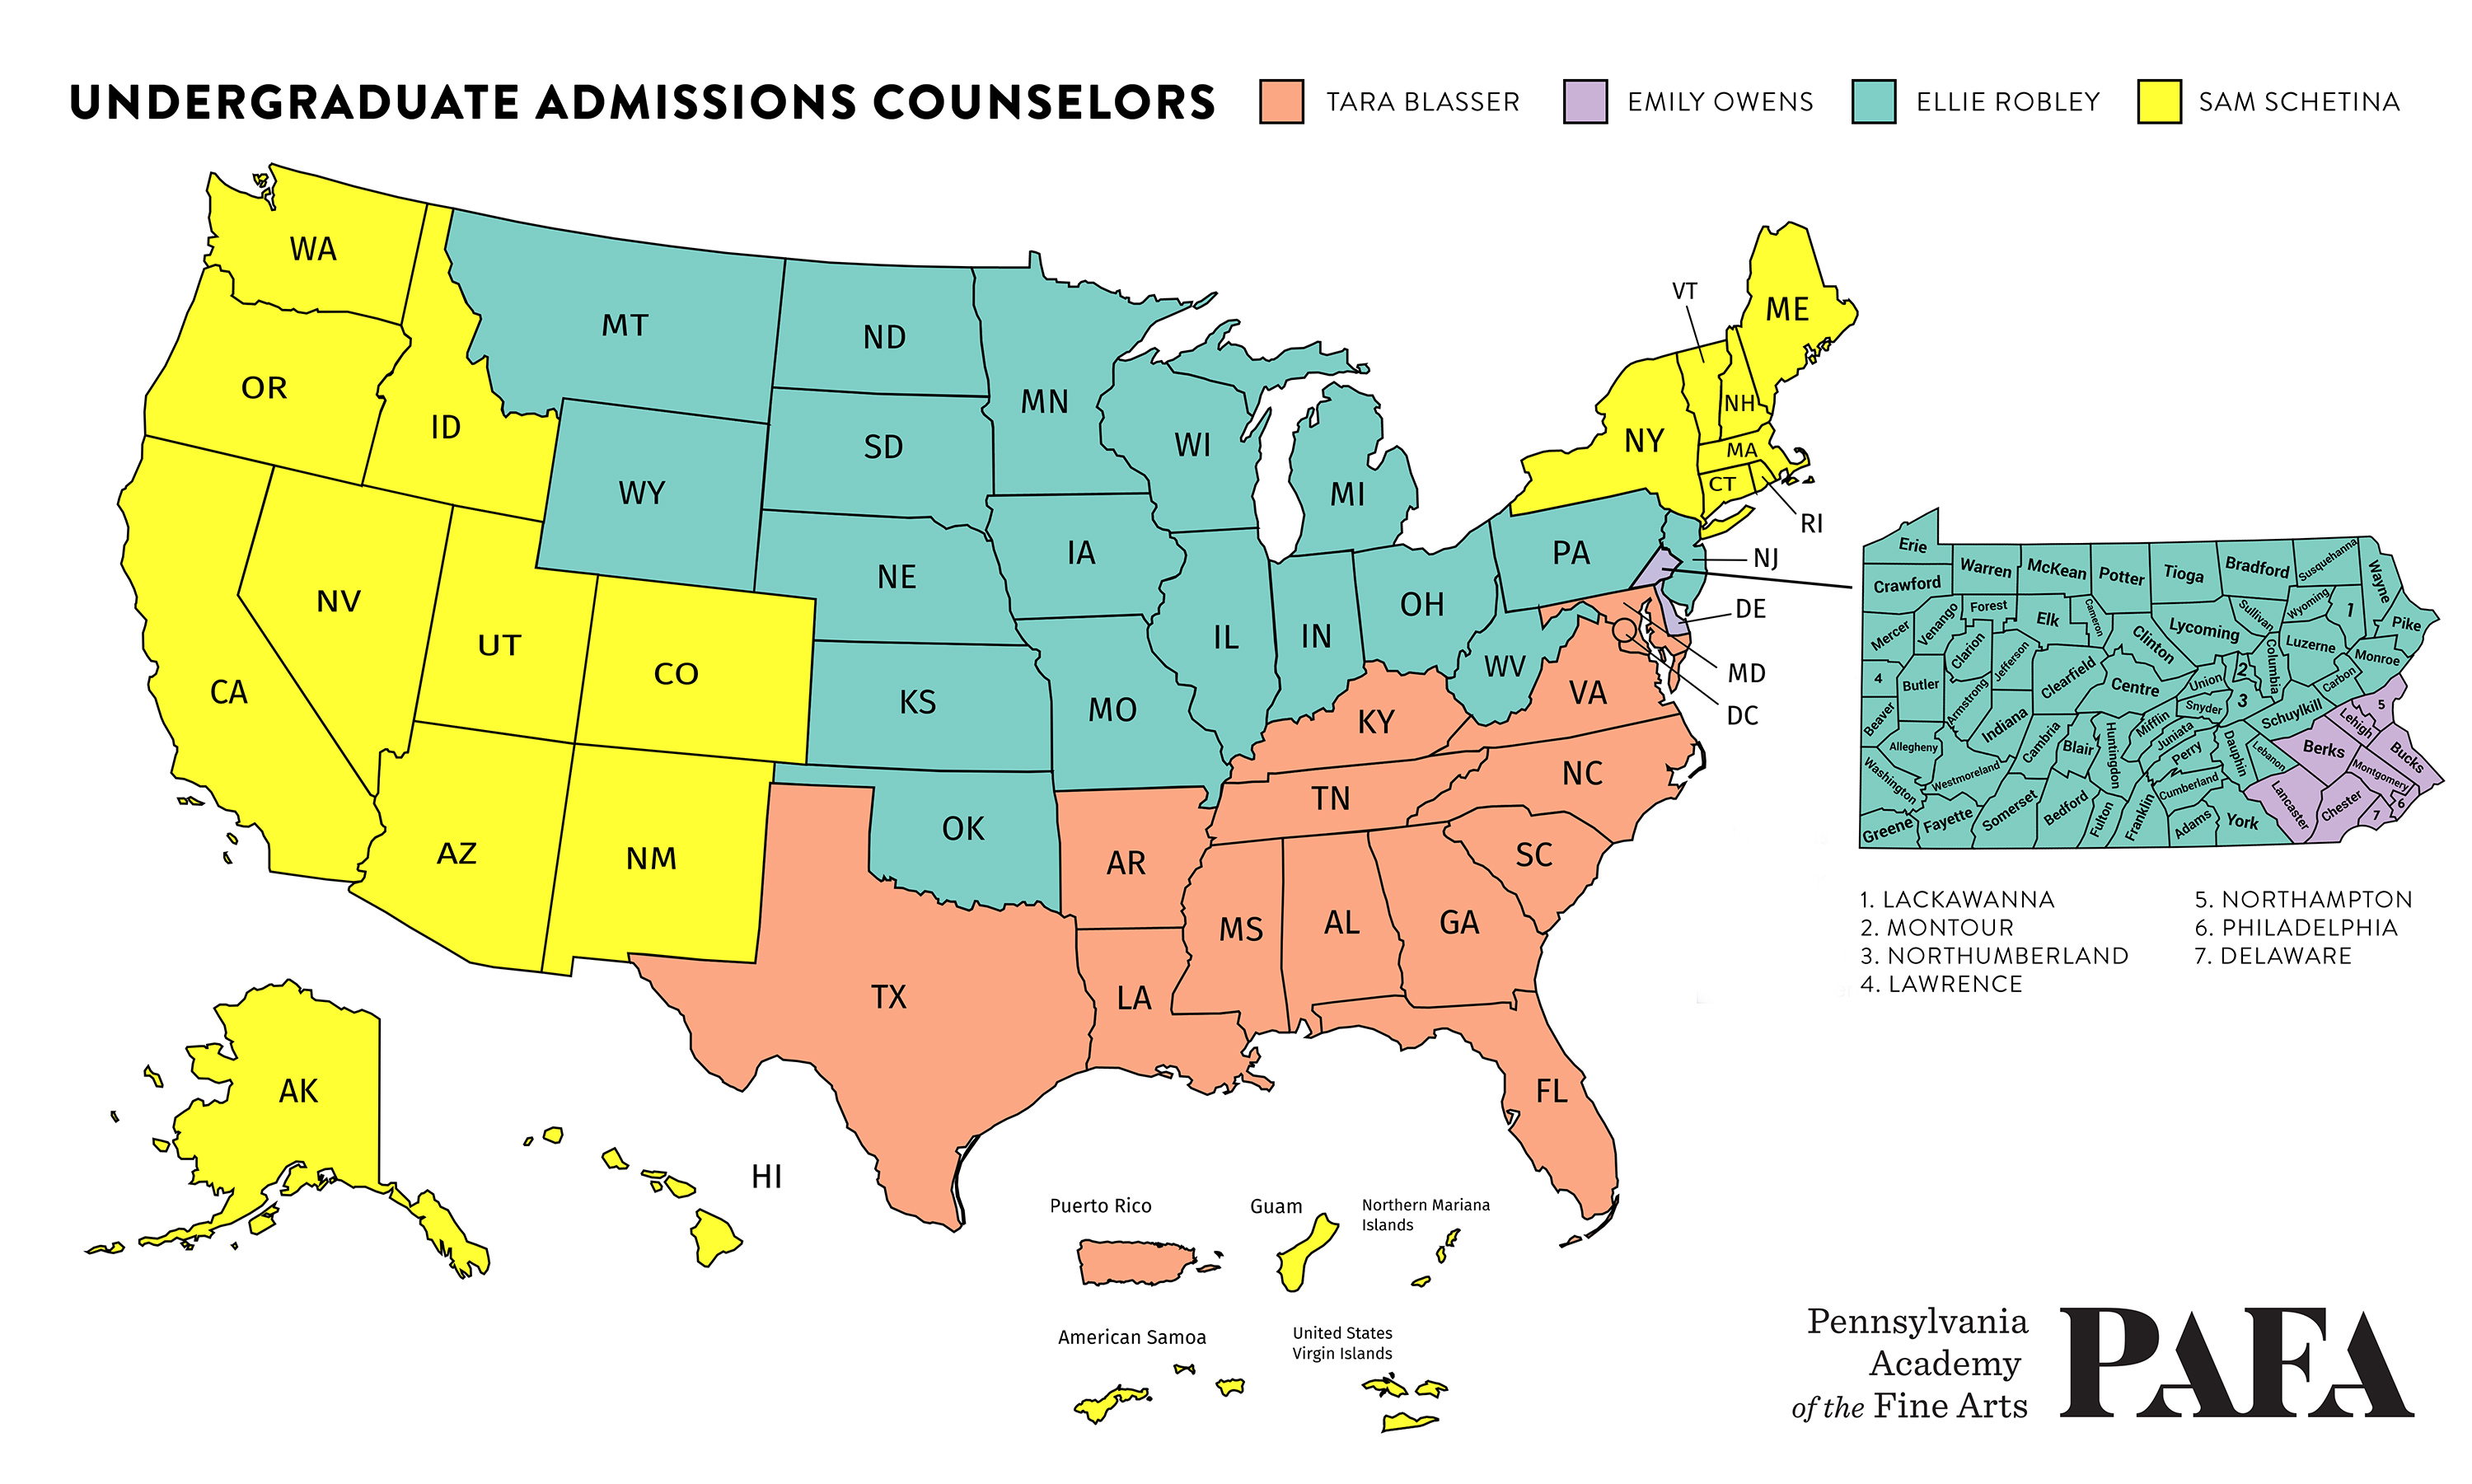 Map of Admissions regions and the corresponding counselors